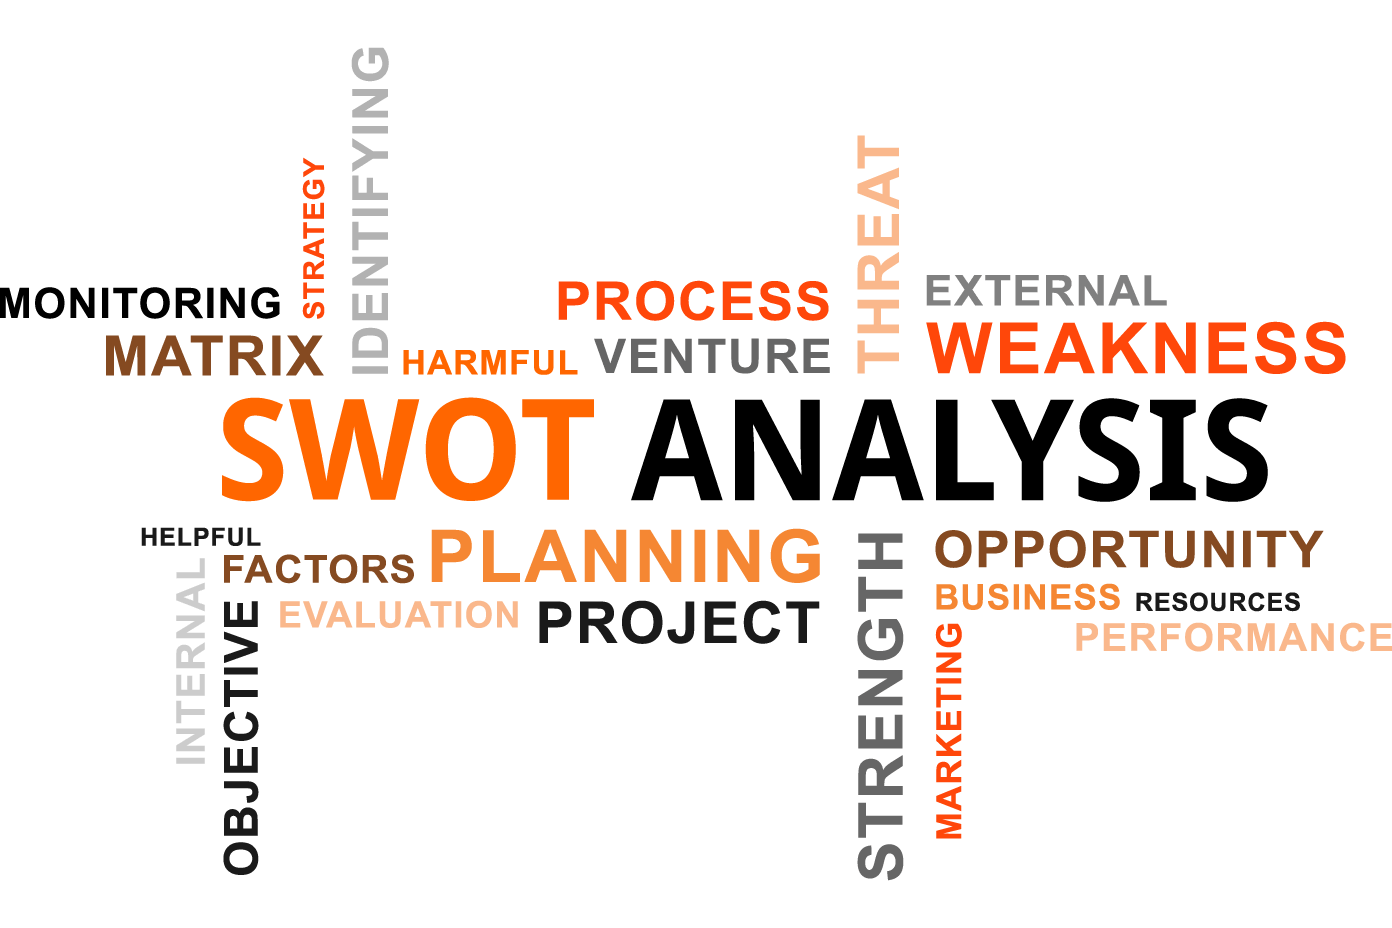 ThereS A Right Way And A Wrong Way To Perform A Swot Analysis